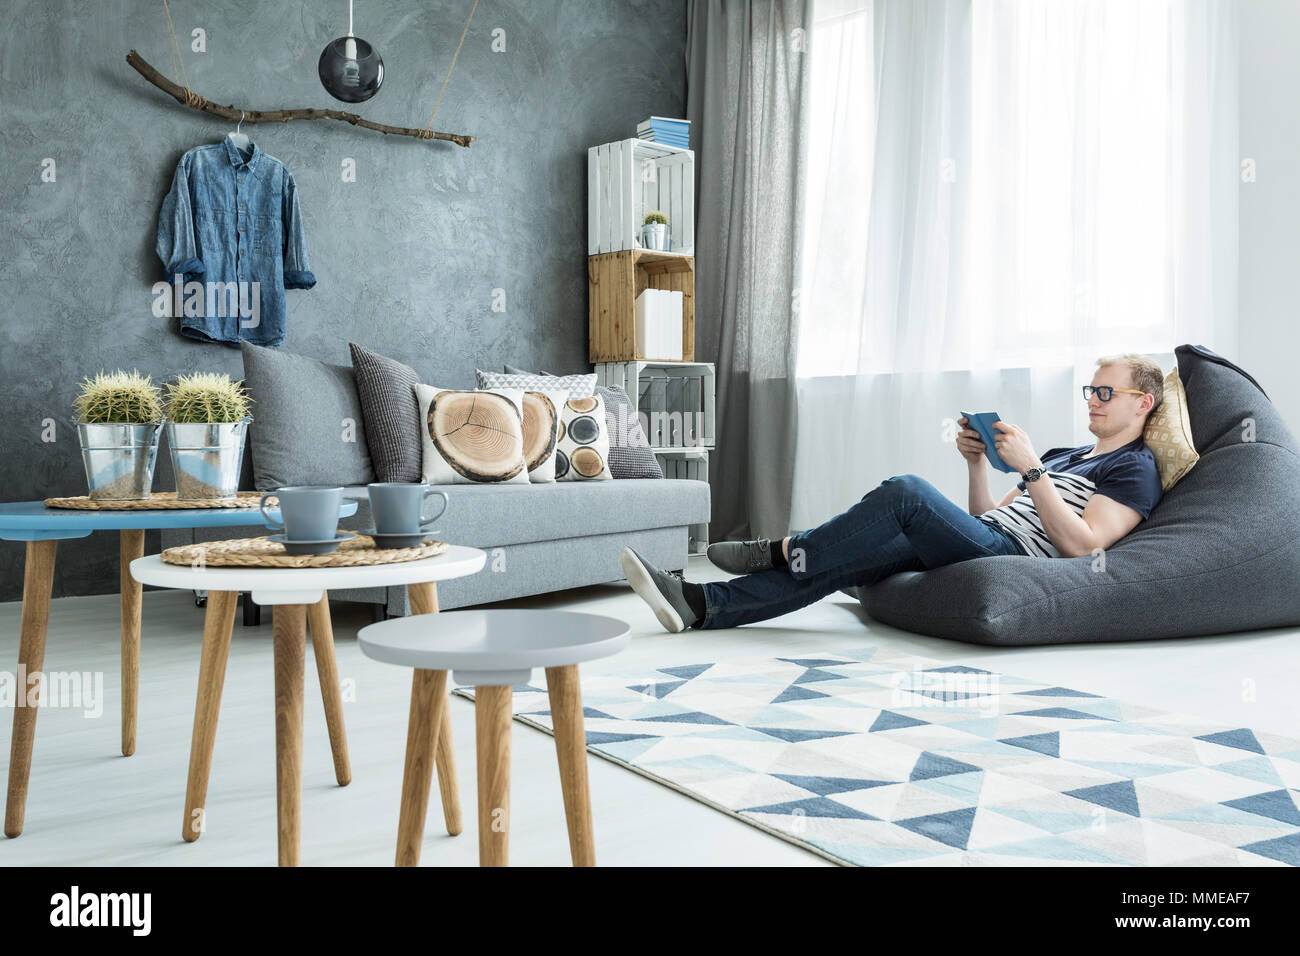 Modern style interior in grey with sofa, stylish futniture, man sitting on a bean bag - Stock Image